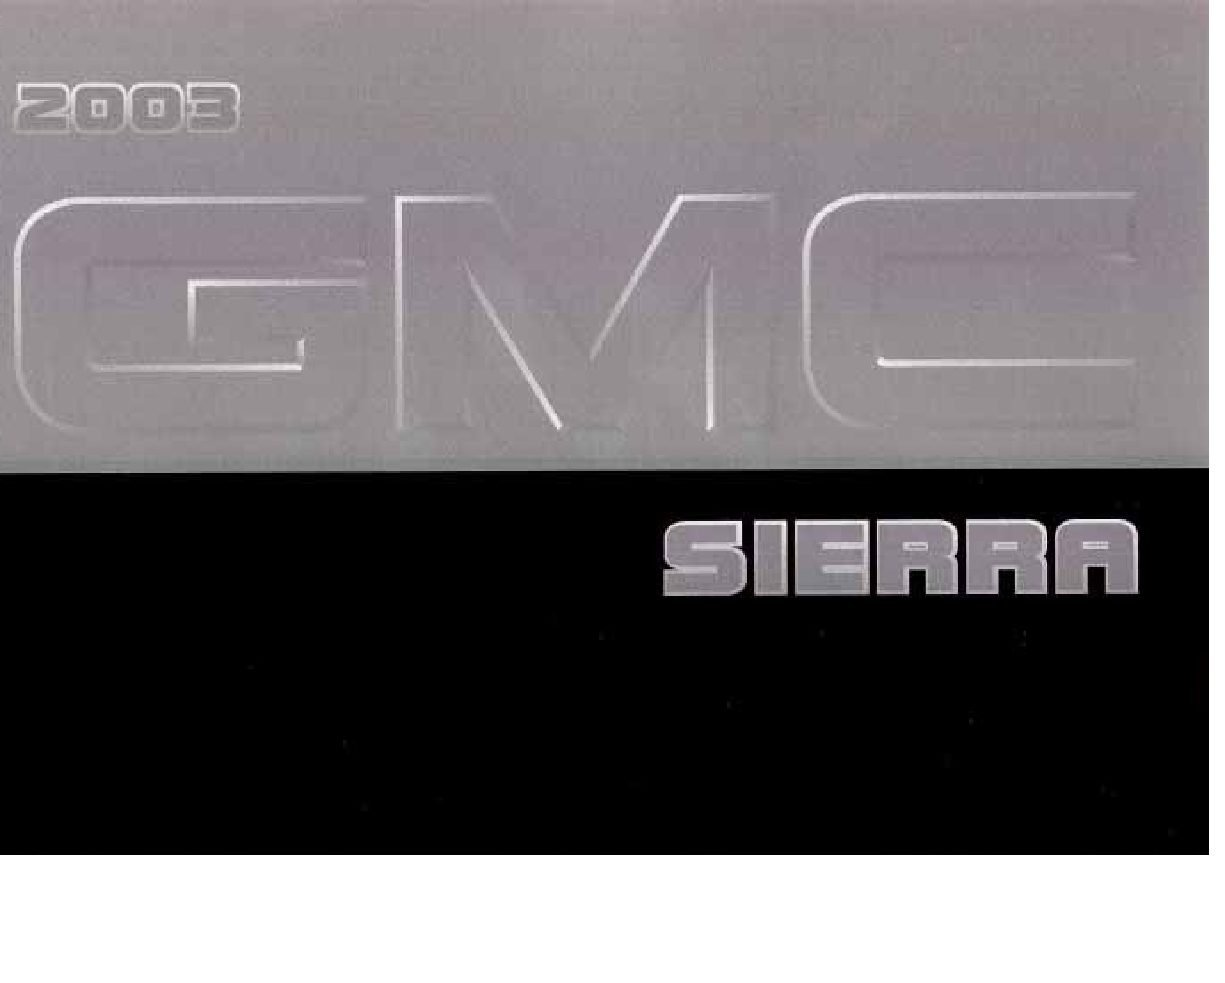 2003 gmc sierra owners manual just give me the damn manual rh justgivemethedamnmanual com 2003 gmc owners manual 2003 gmc yukon owner's manual